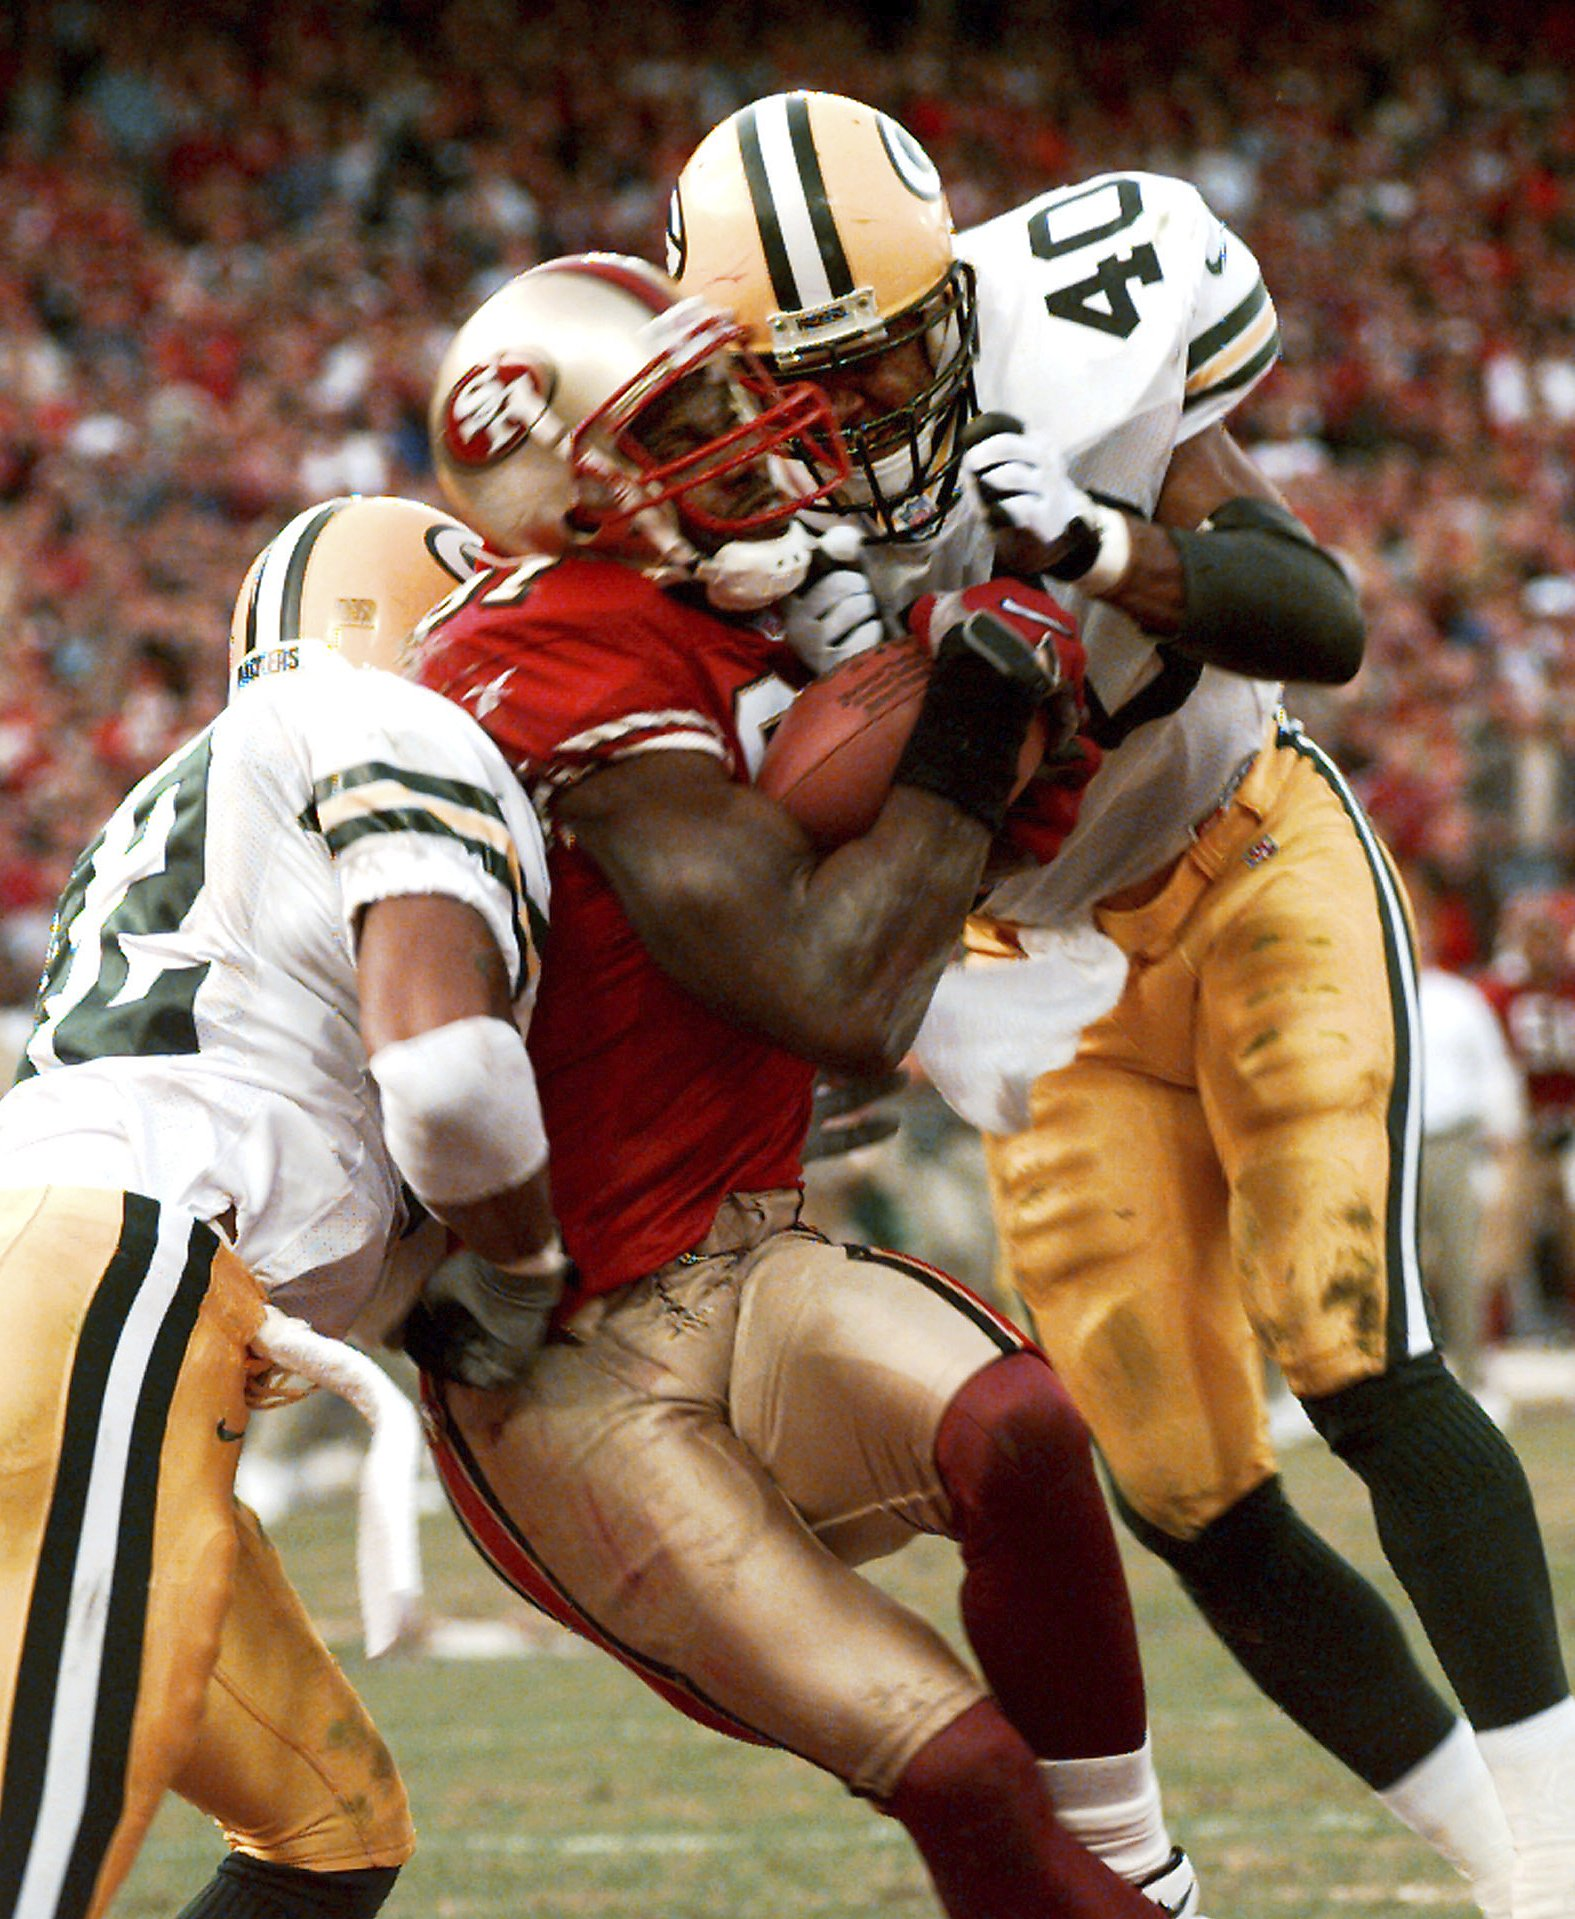 Steve Young, Steve Mariucci reflect on 49ers beating Packers on The Catch II